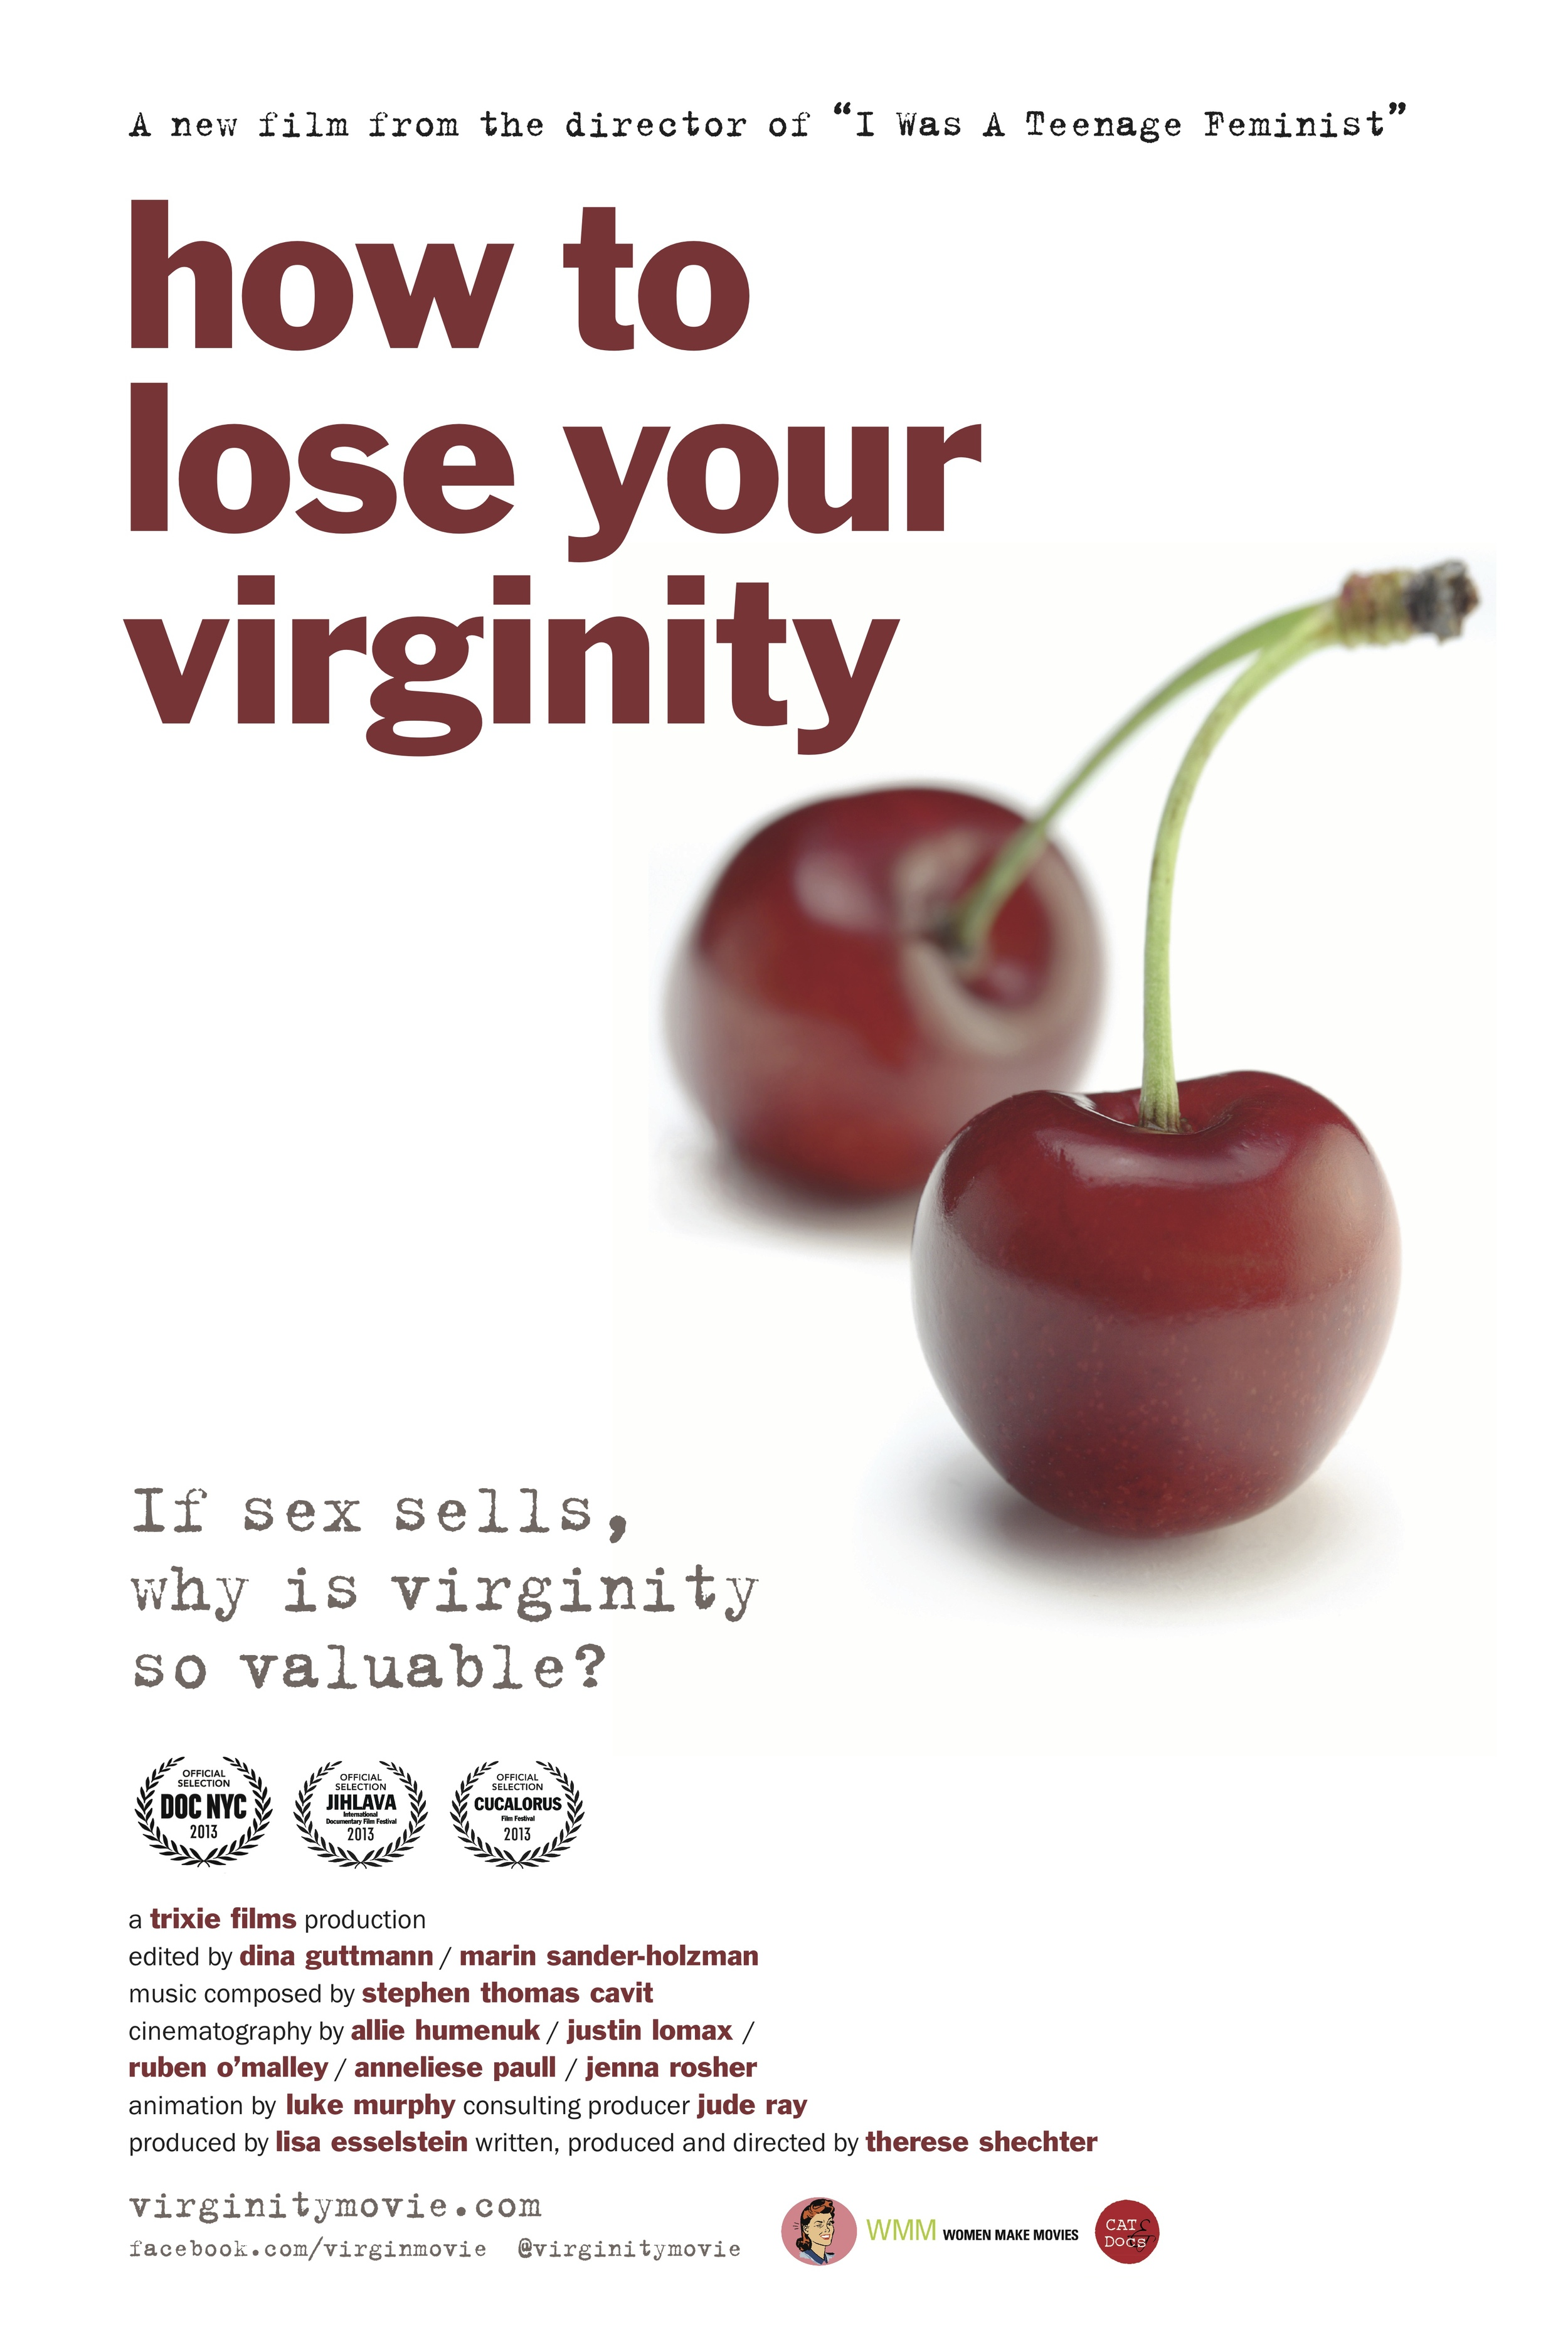 FILM POSTER. IMAGE COURTESY OF TRIXIE FILMS